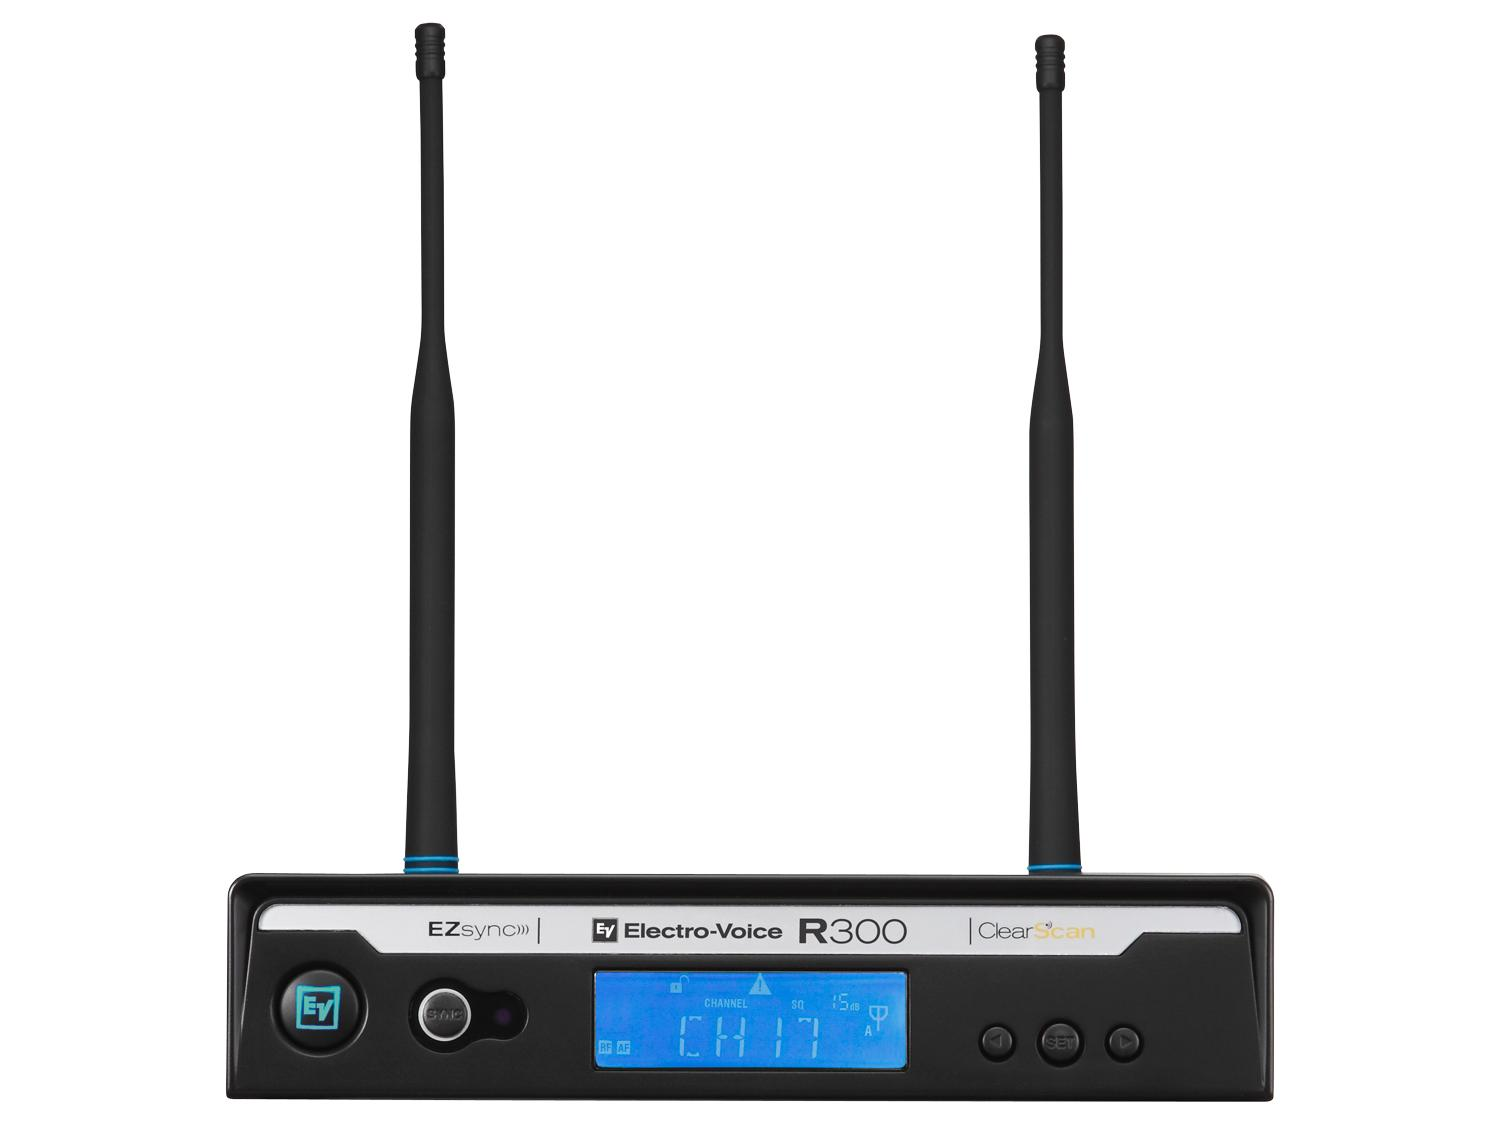 Electro-Voice R300RXC R300 Series Wireless Extender (Receiver) and Case Only C-Band/516-532 MHz